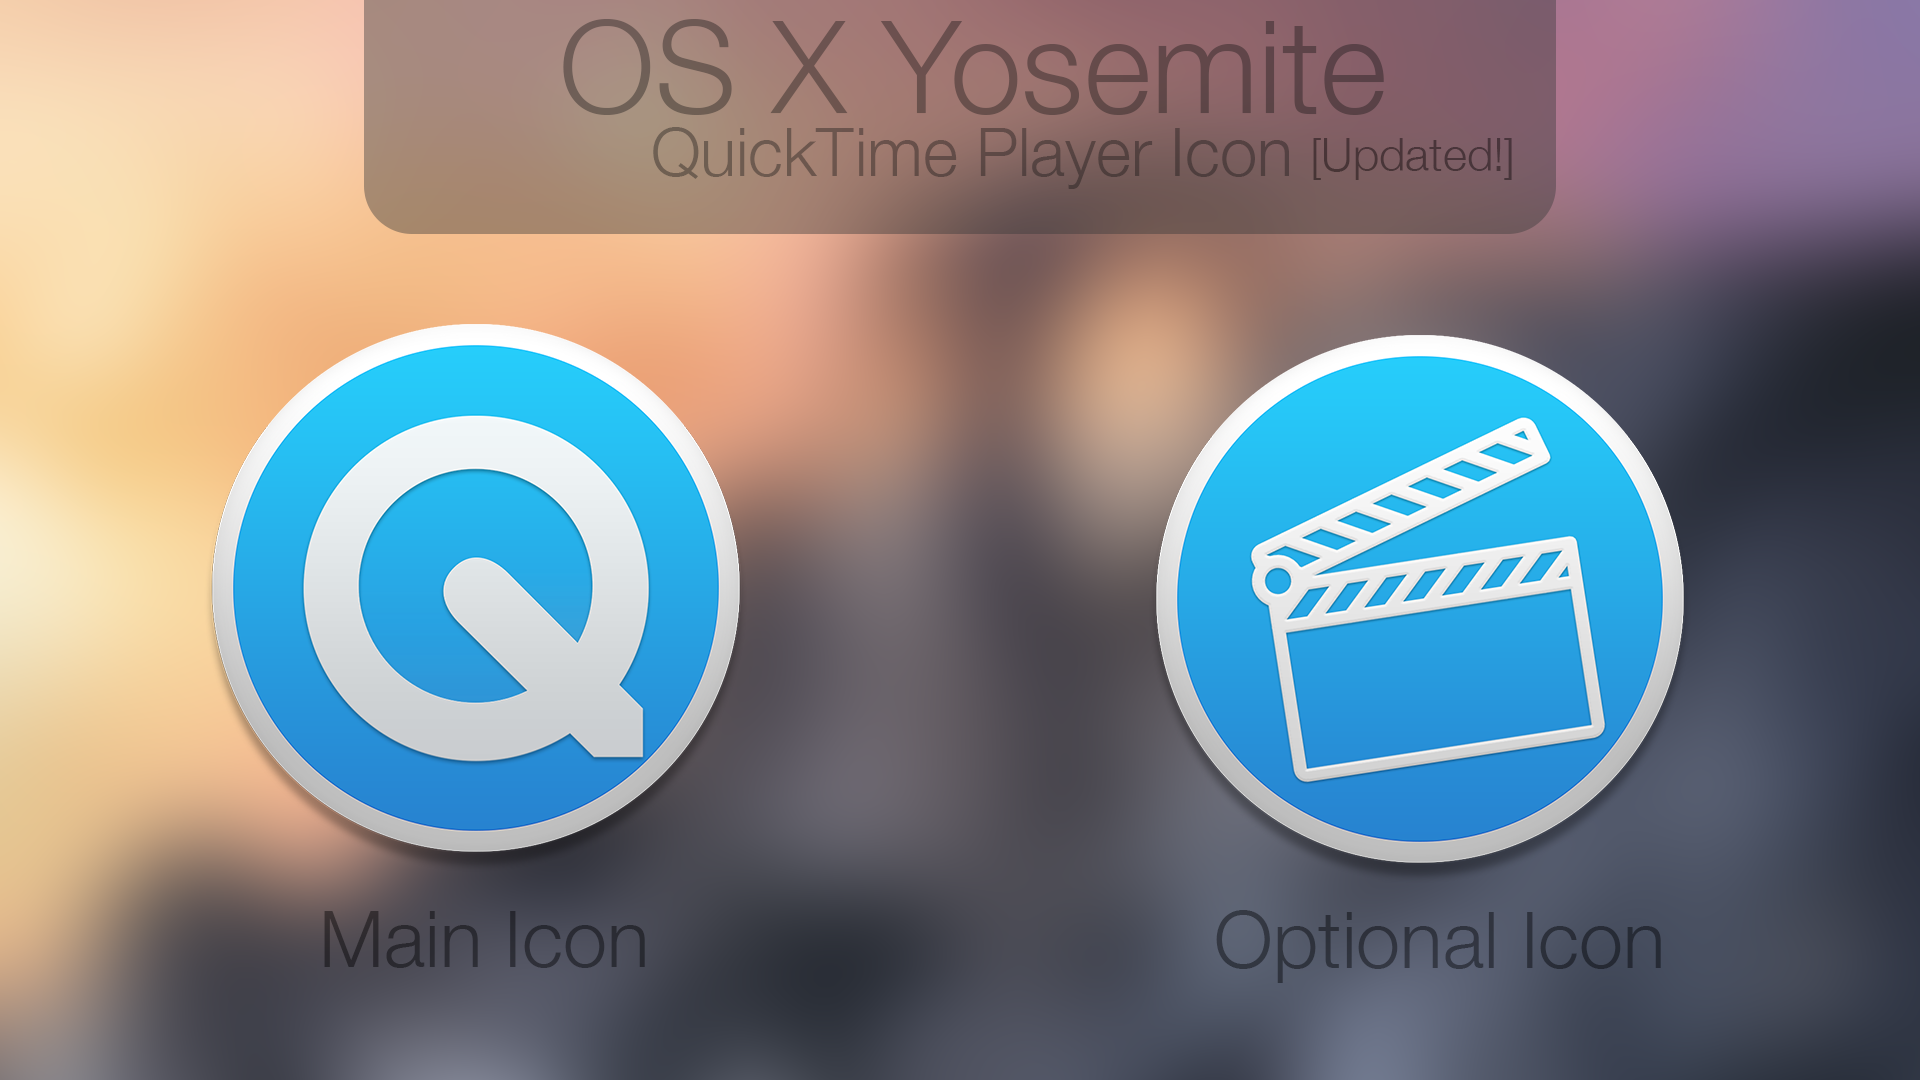 OS X Yosemite QuickTime Player Icon! [UPDATE!]